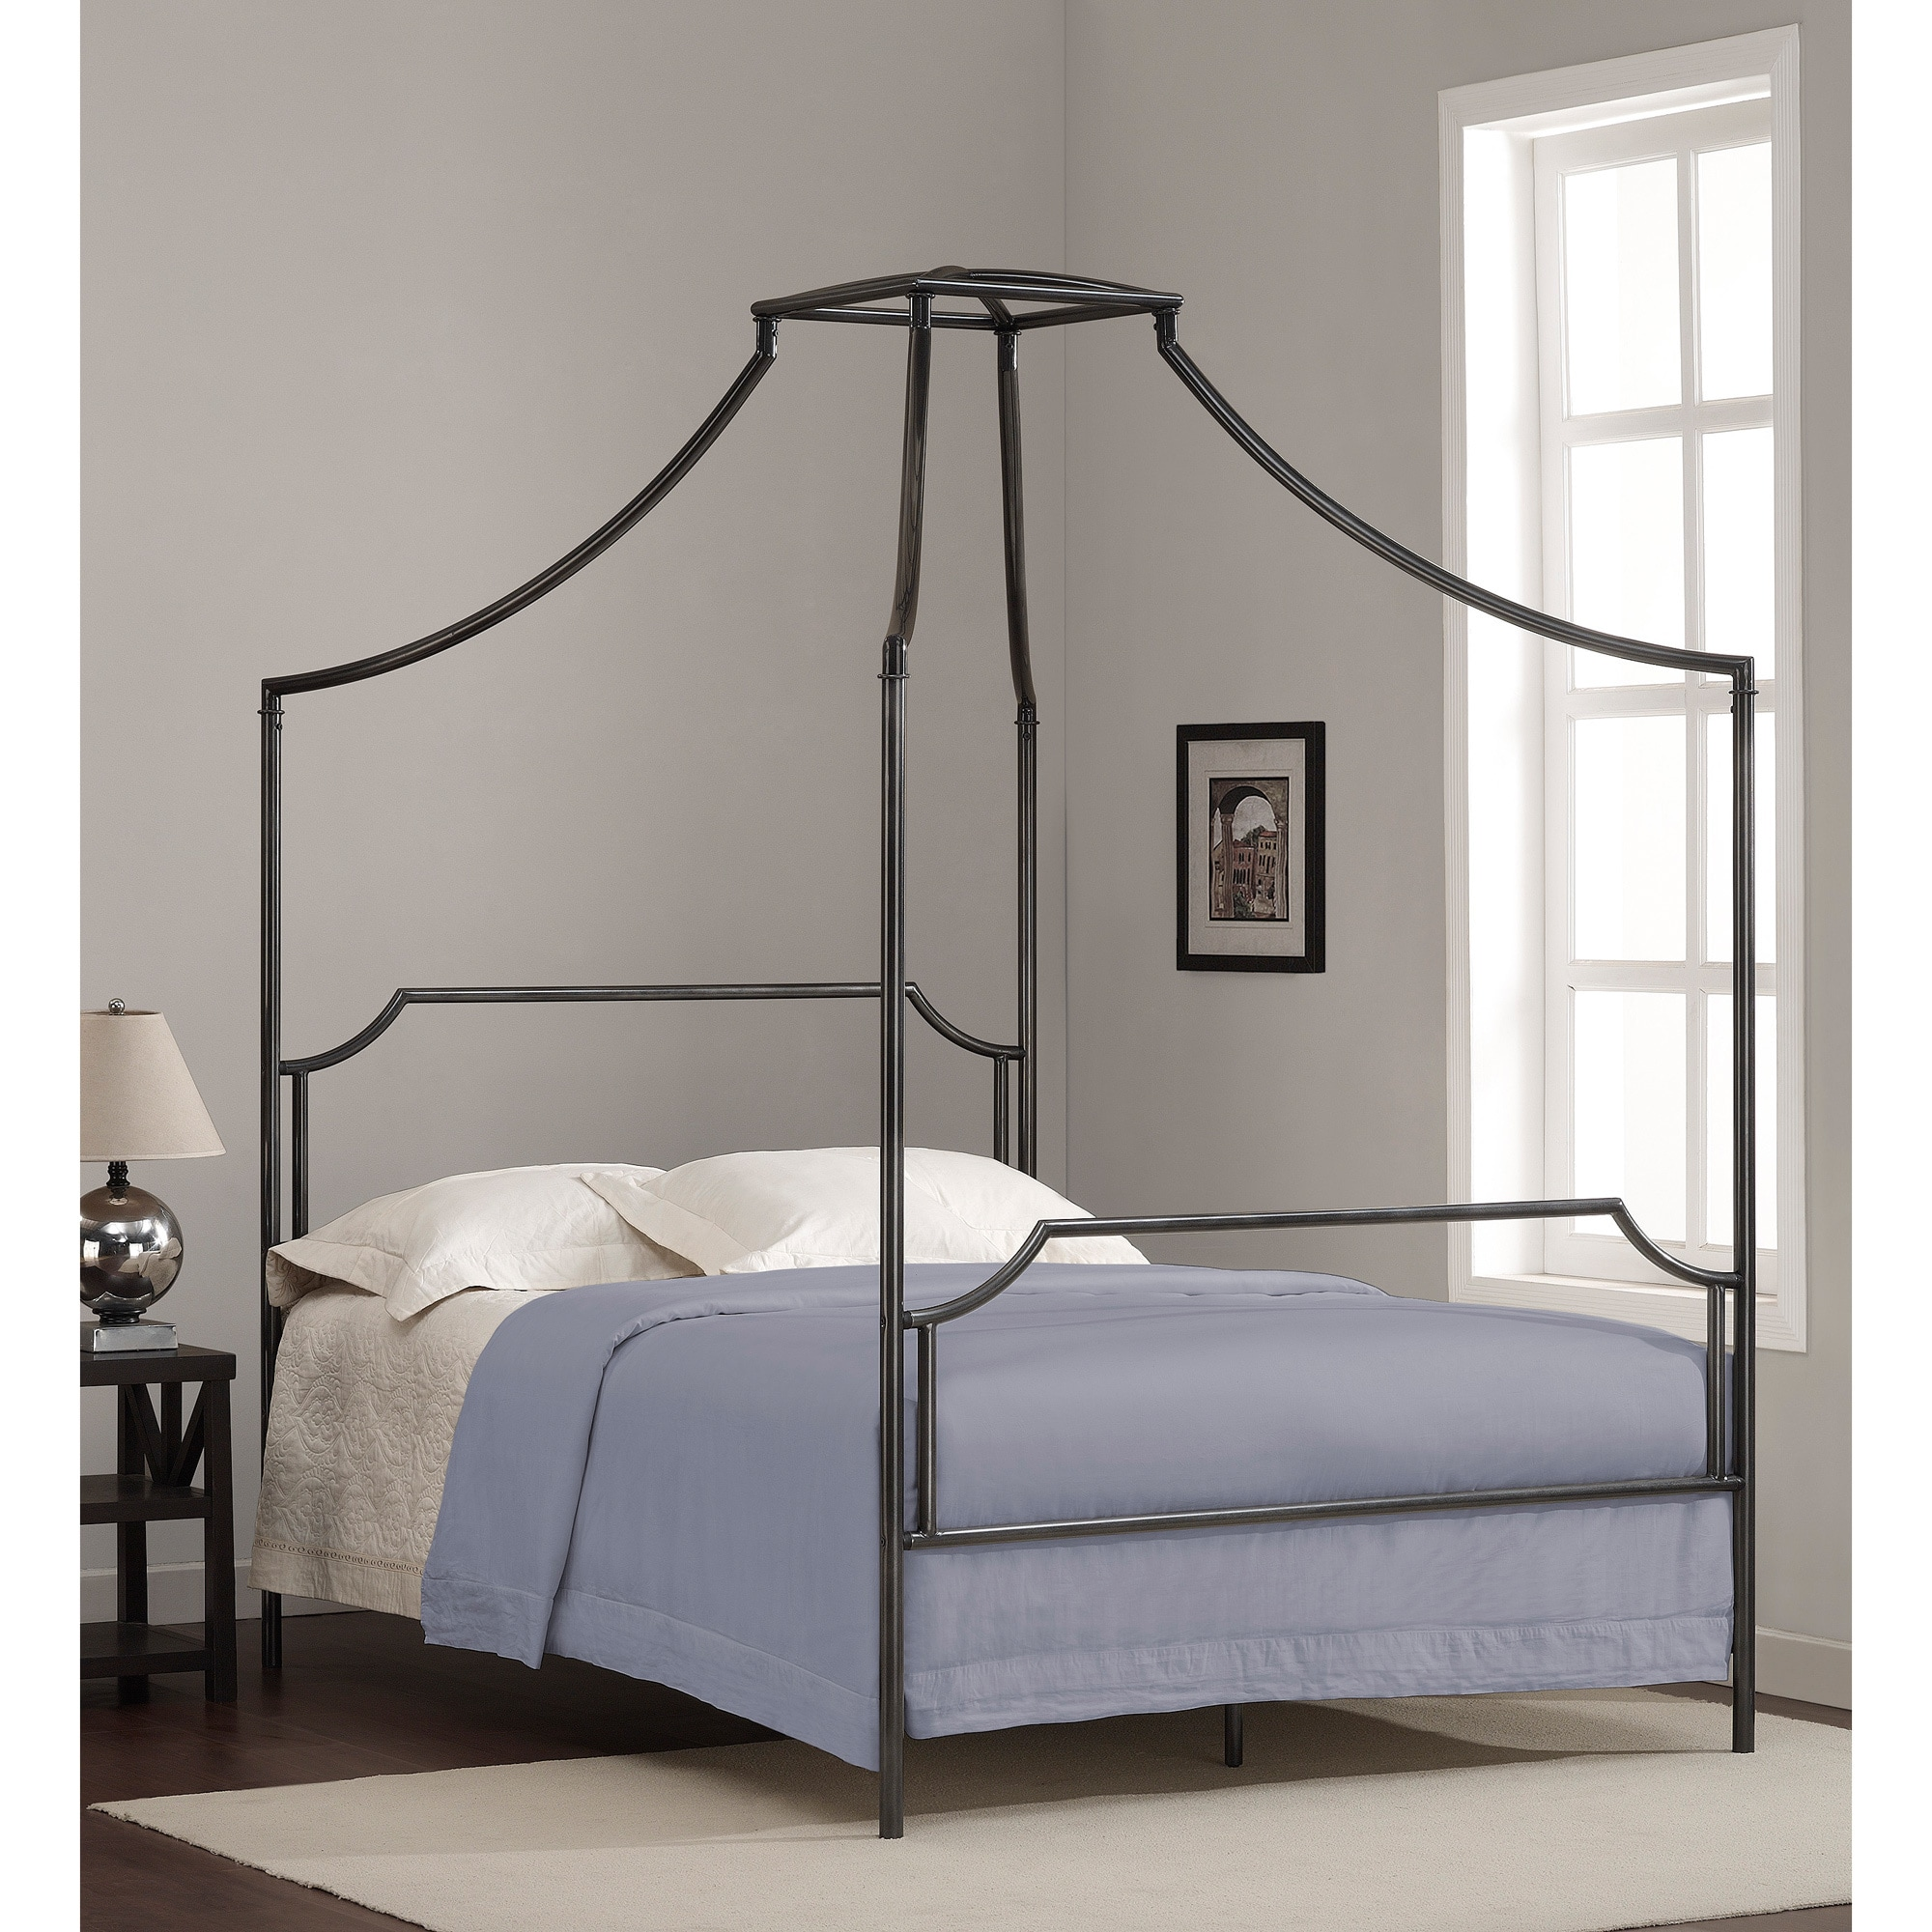 Bailey Charcoal Full Size Canopy Bed Frame